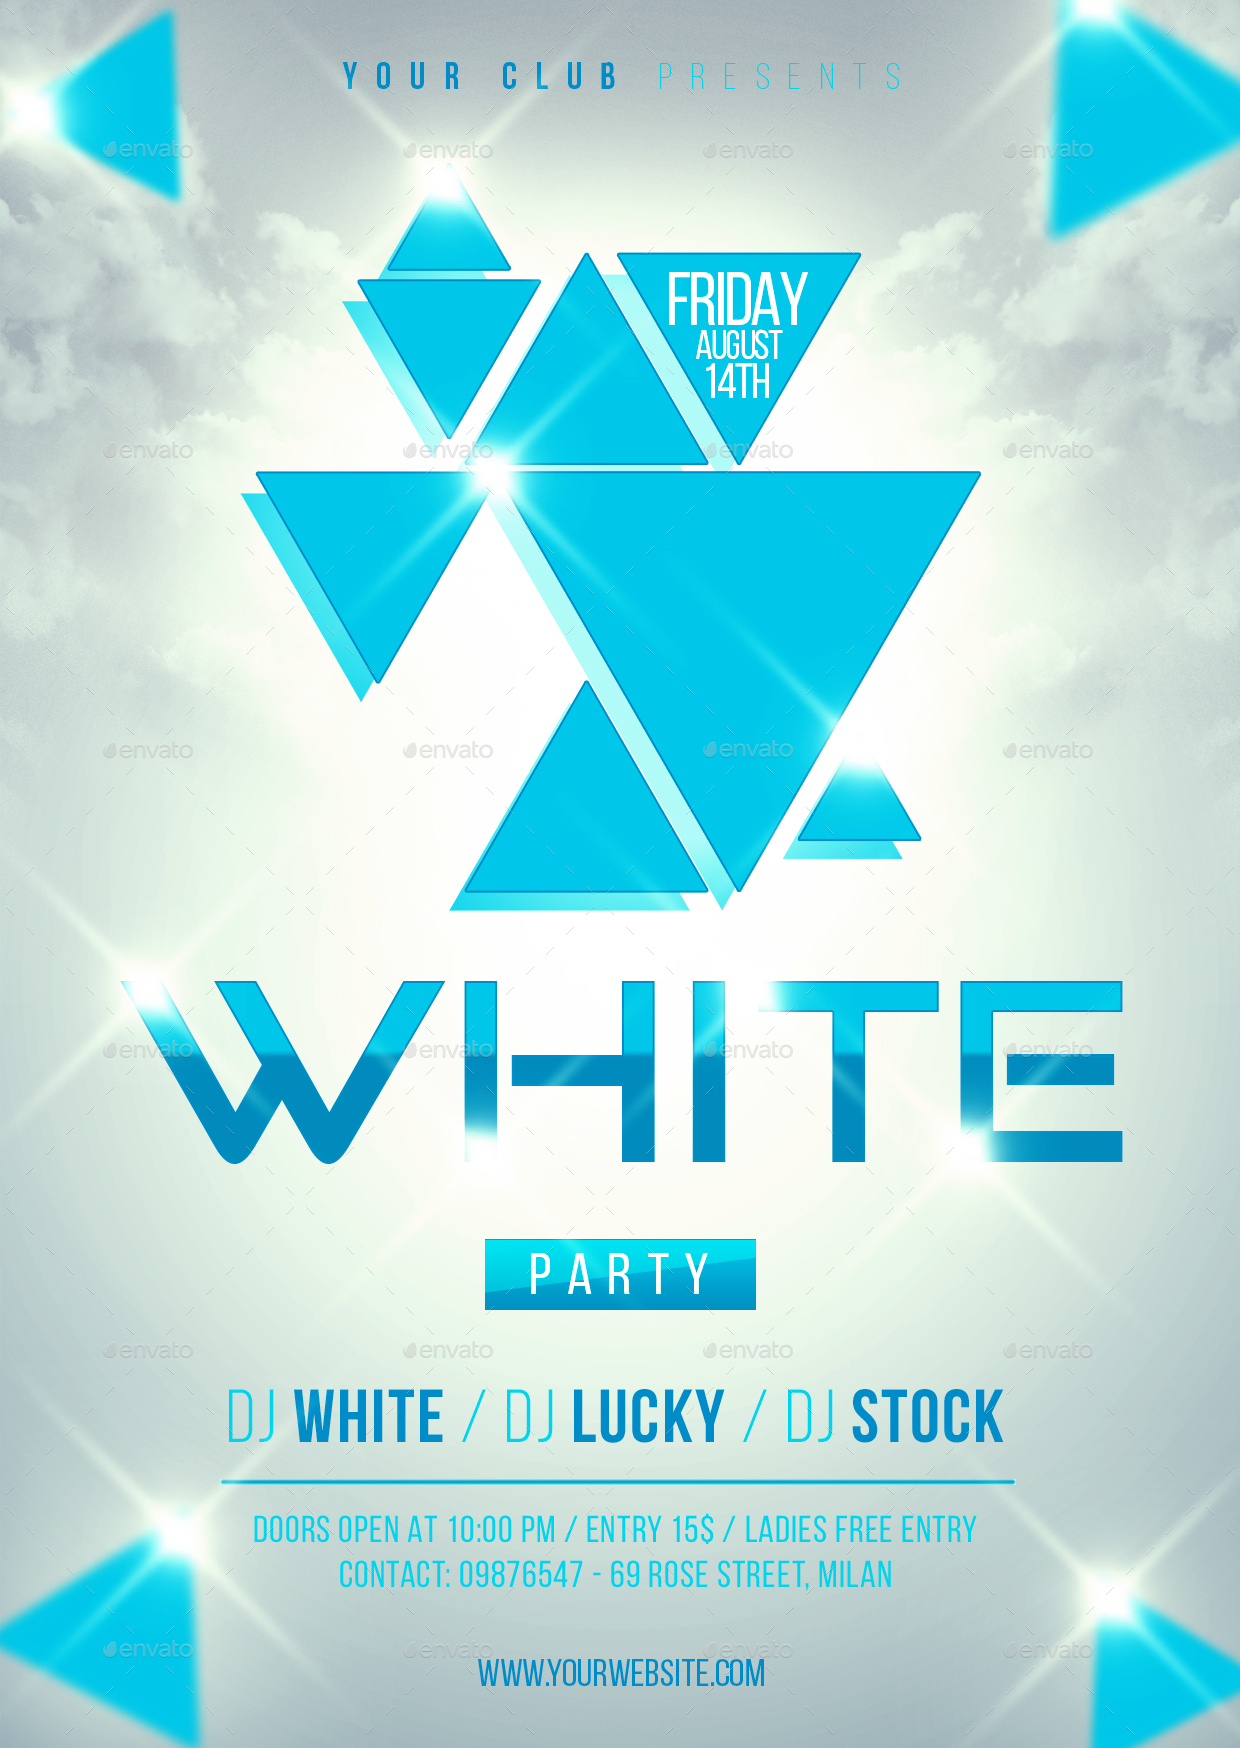 white party flyer template by lapabrothers graphicriver rh graphicriver net white party flyer free download white party flyer psd